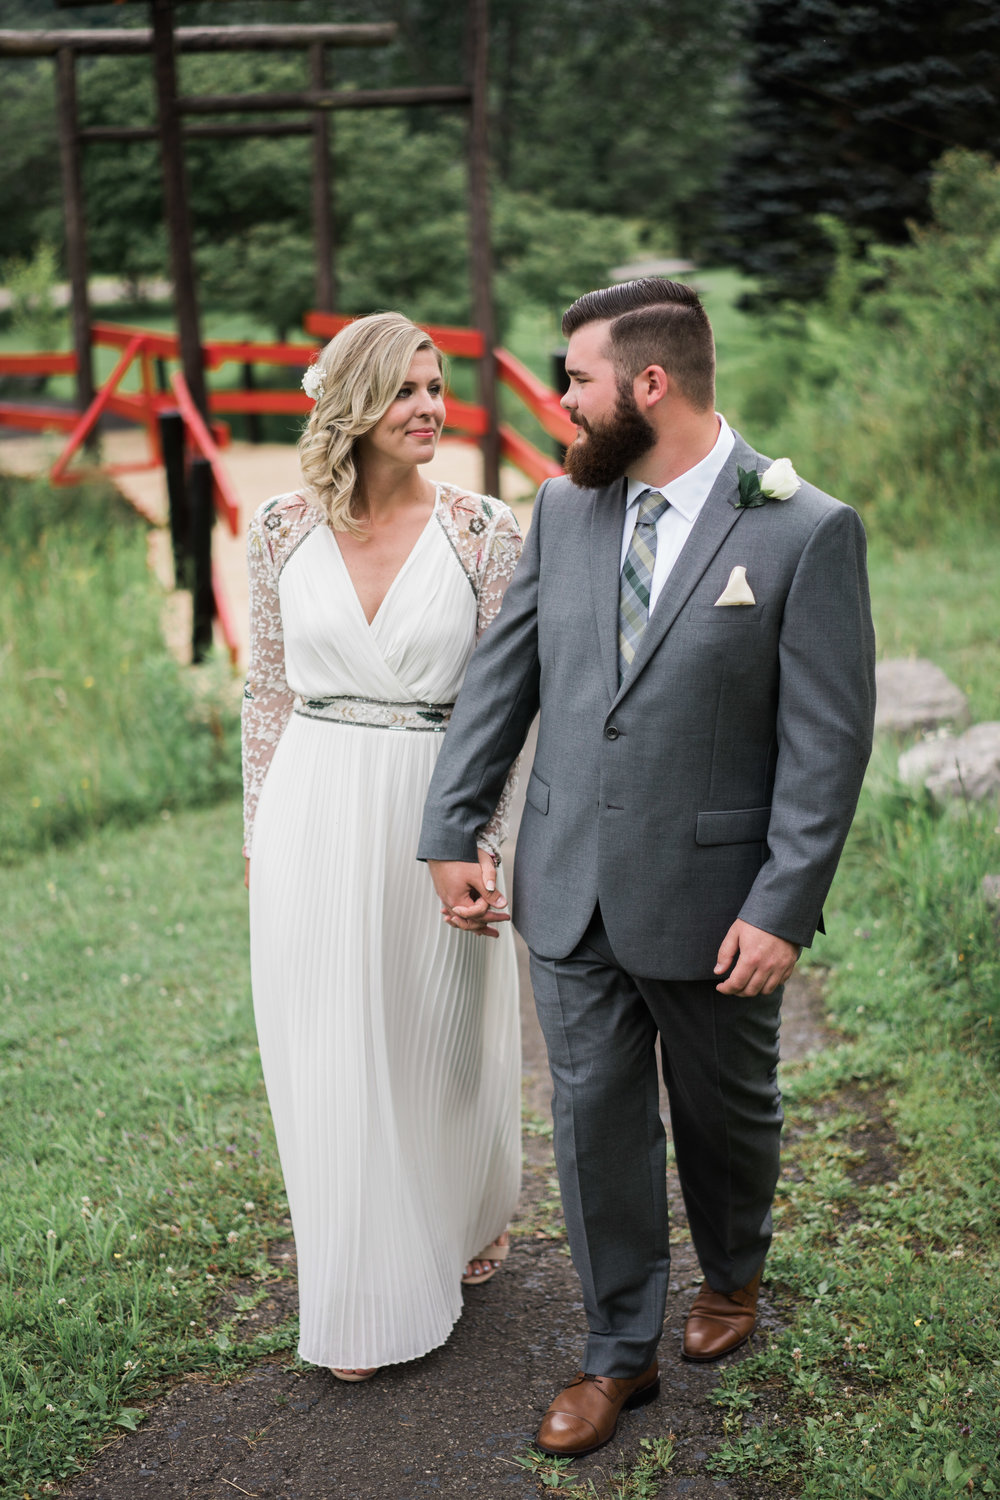 Allison and Matt Wedding Photography in Ellicottville ny by Stefan Ludwig Photography-113.jpg